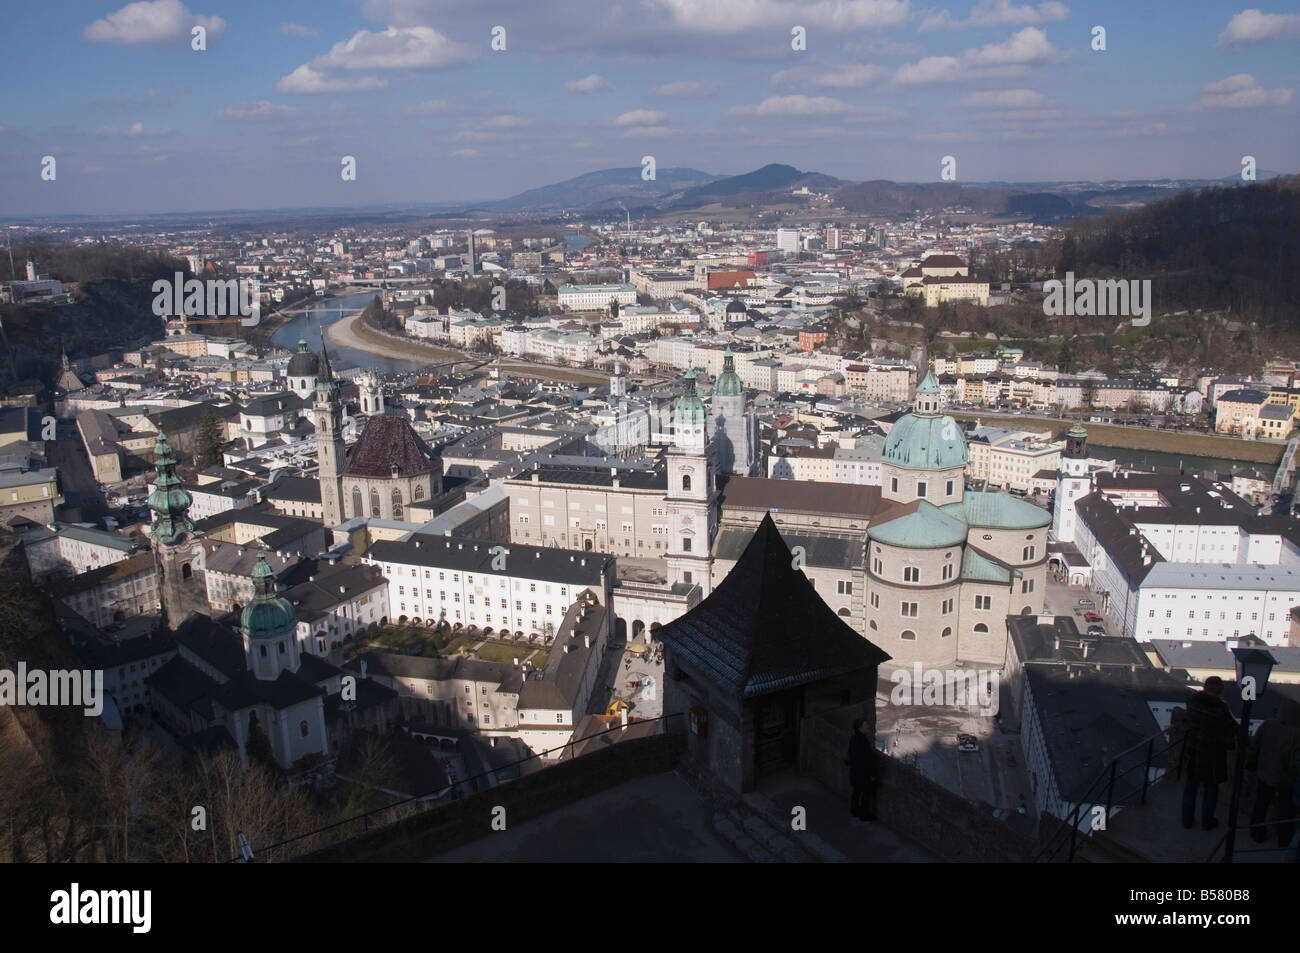 View from the Hohensalzburg Fortress, Salzburg, Austria, Europe - Stock Image